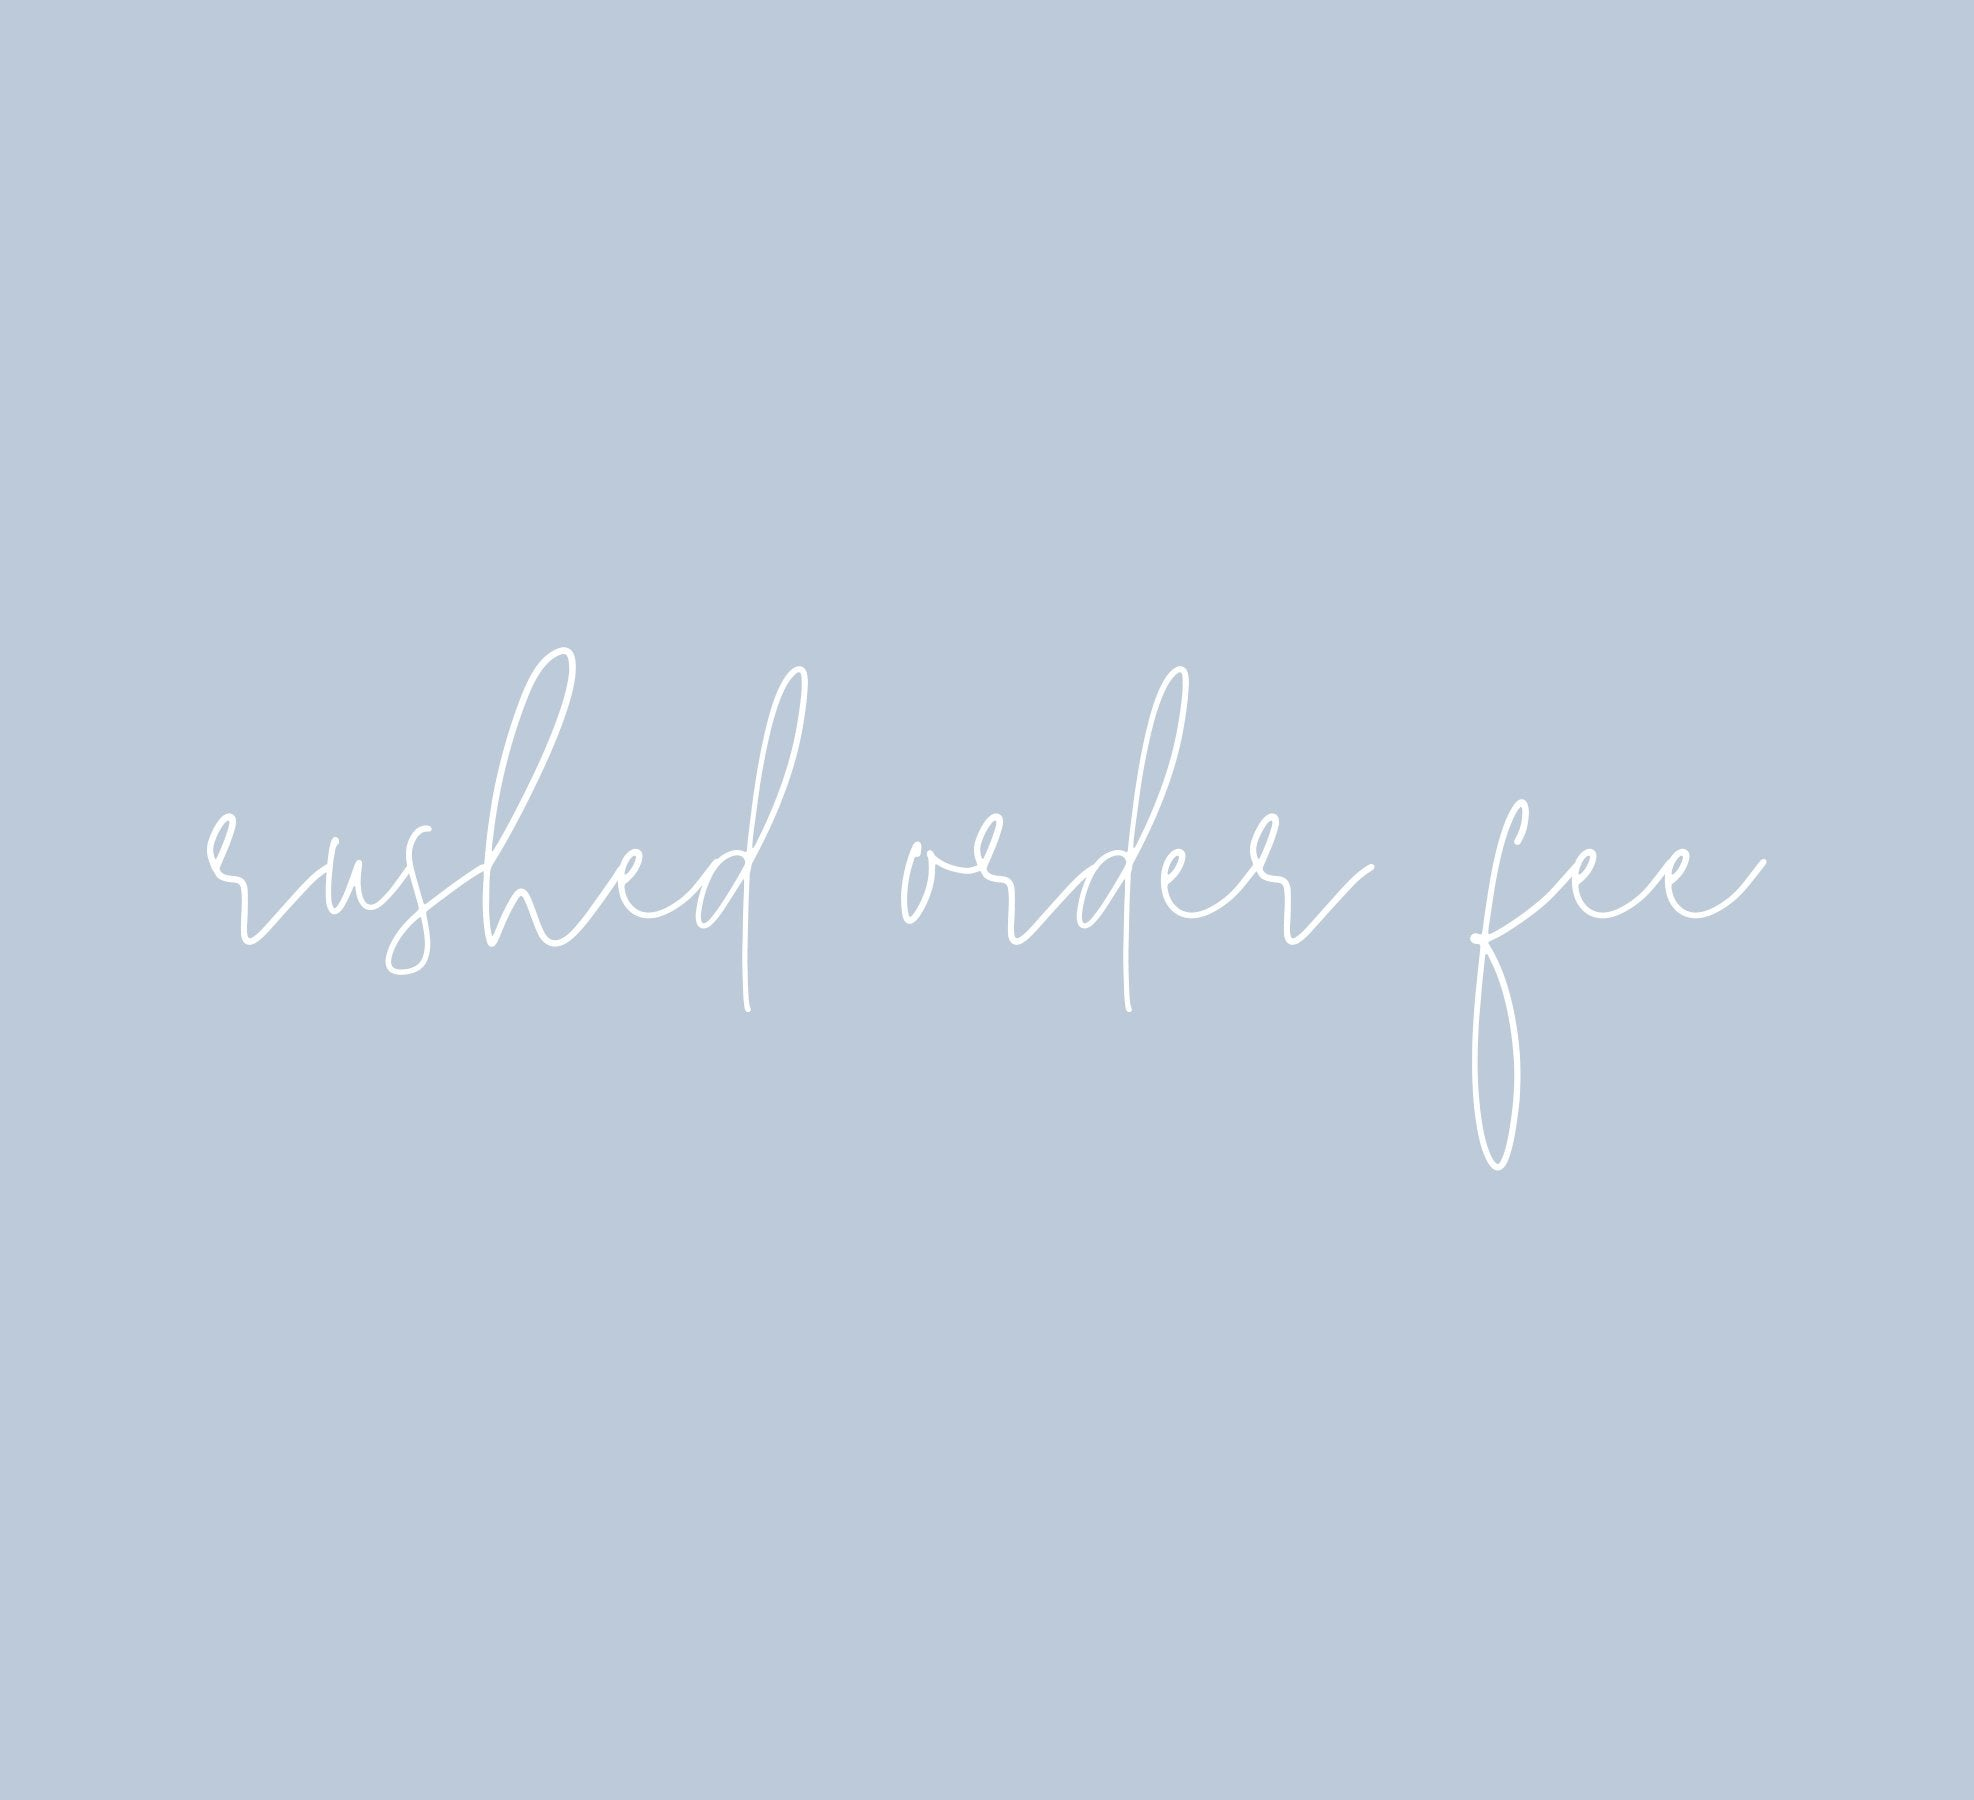 Rushed Order Fee